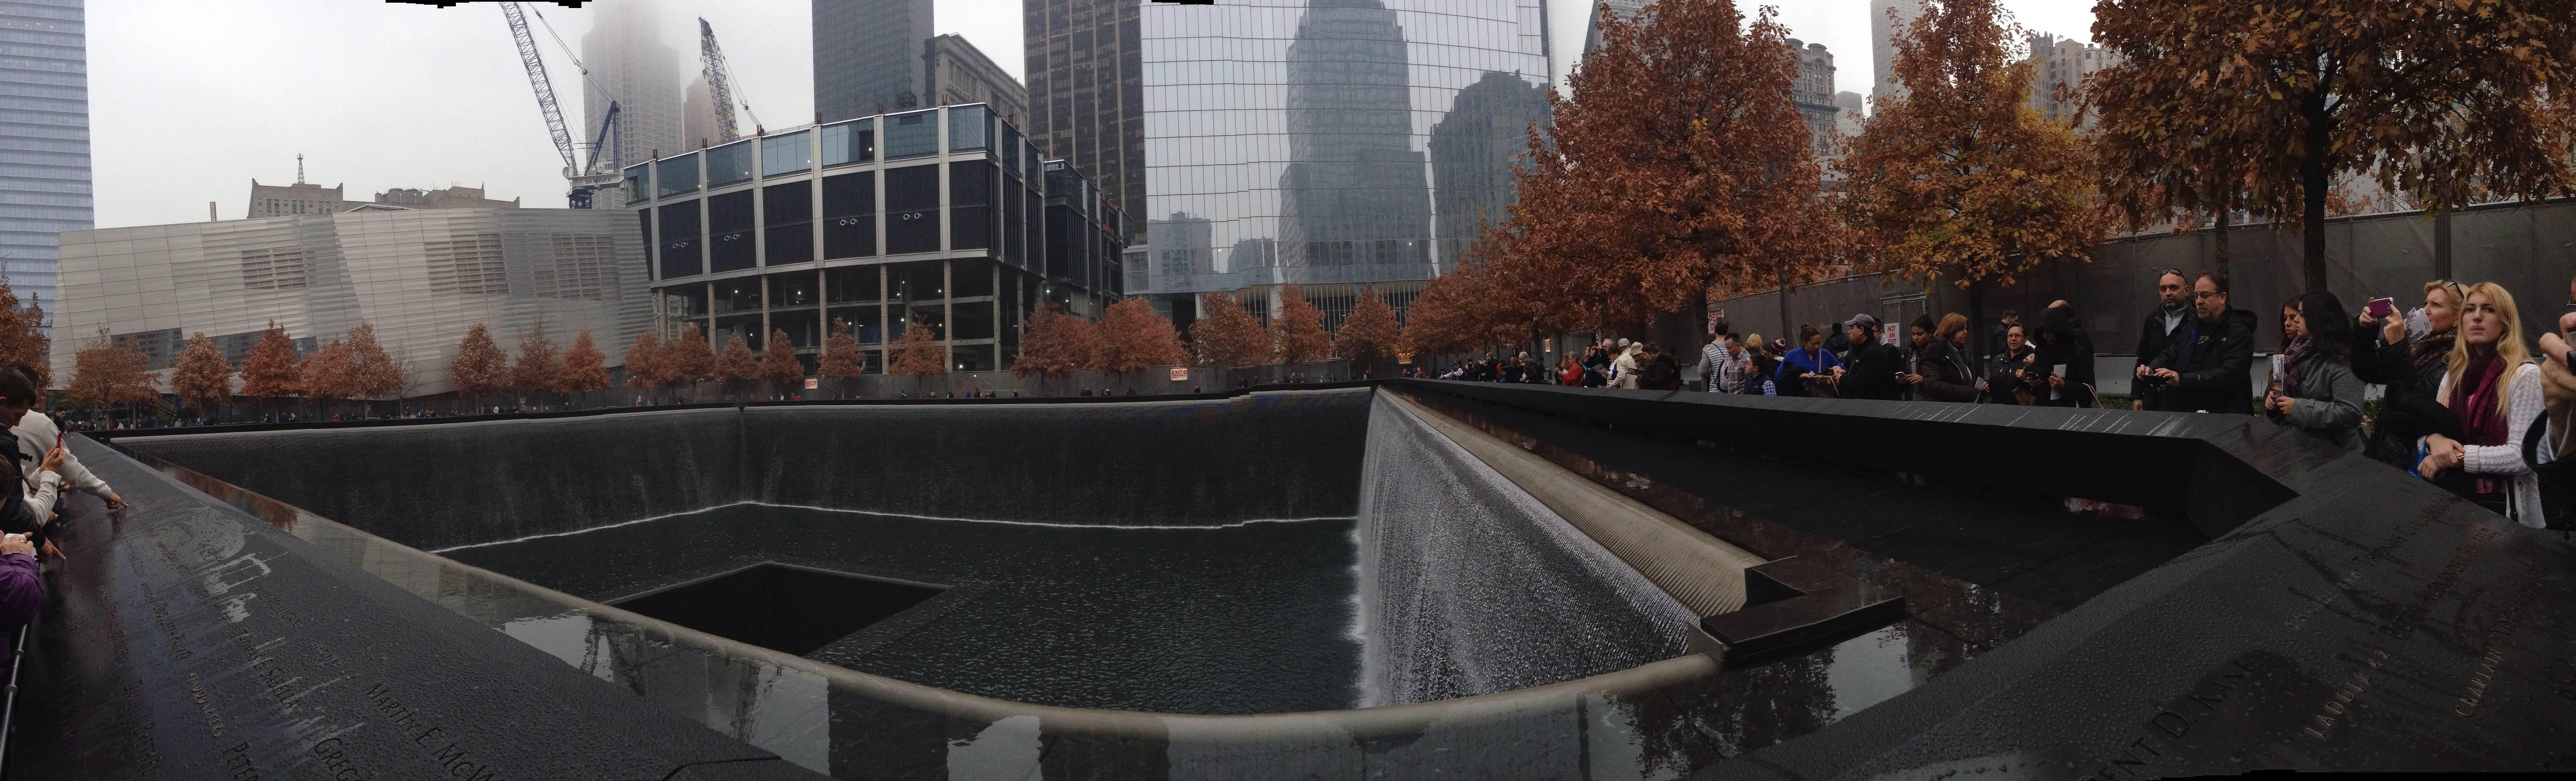 Plaza en World Trade Center Site